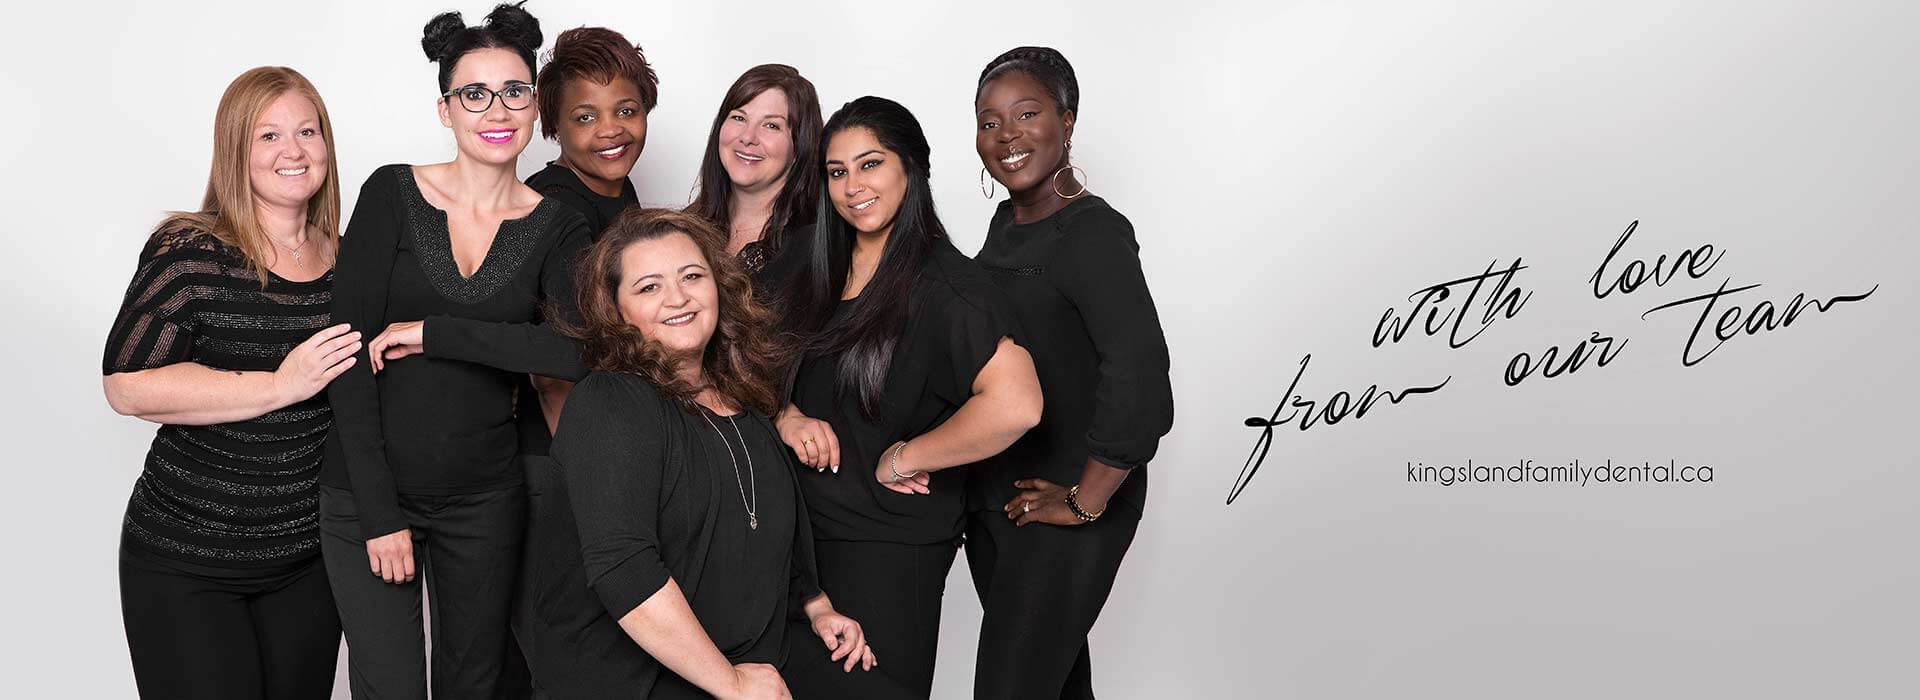 Kingsland Family Dental Team | Kingsland Family Dental Centre | SW Calgary | General Dentist